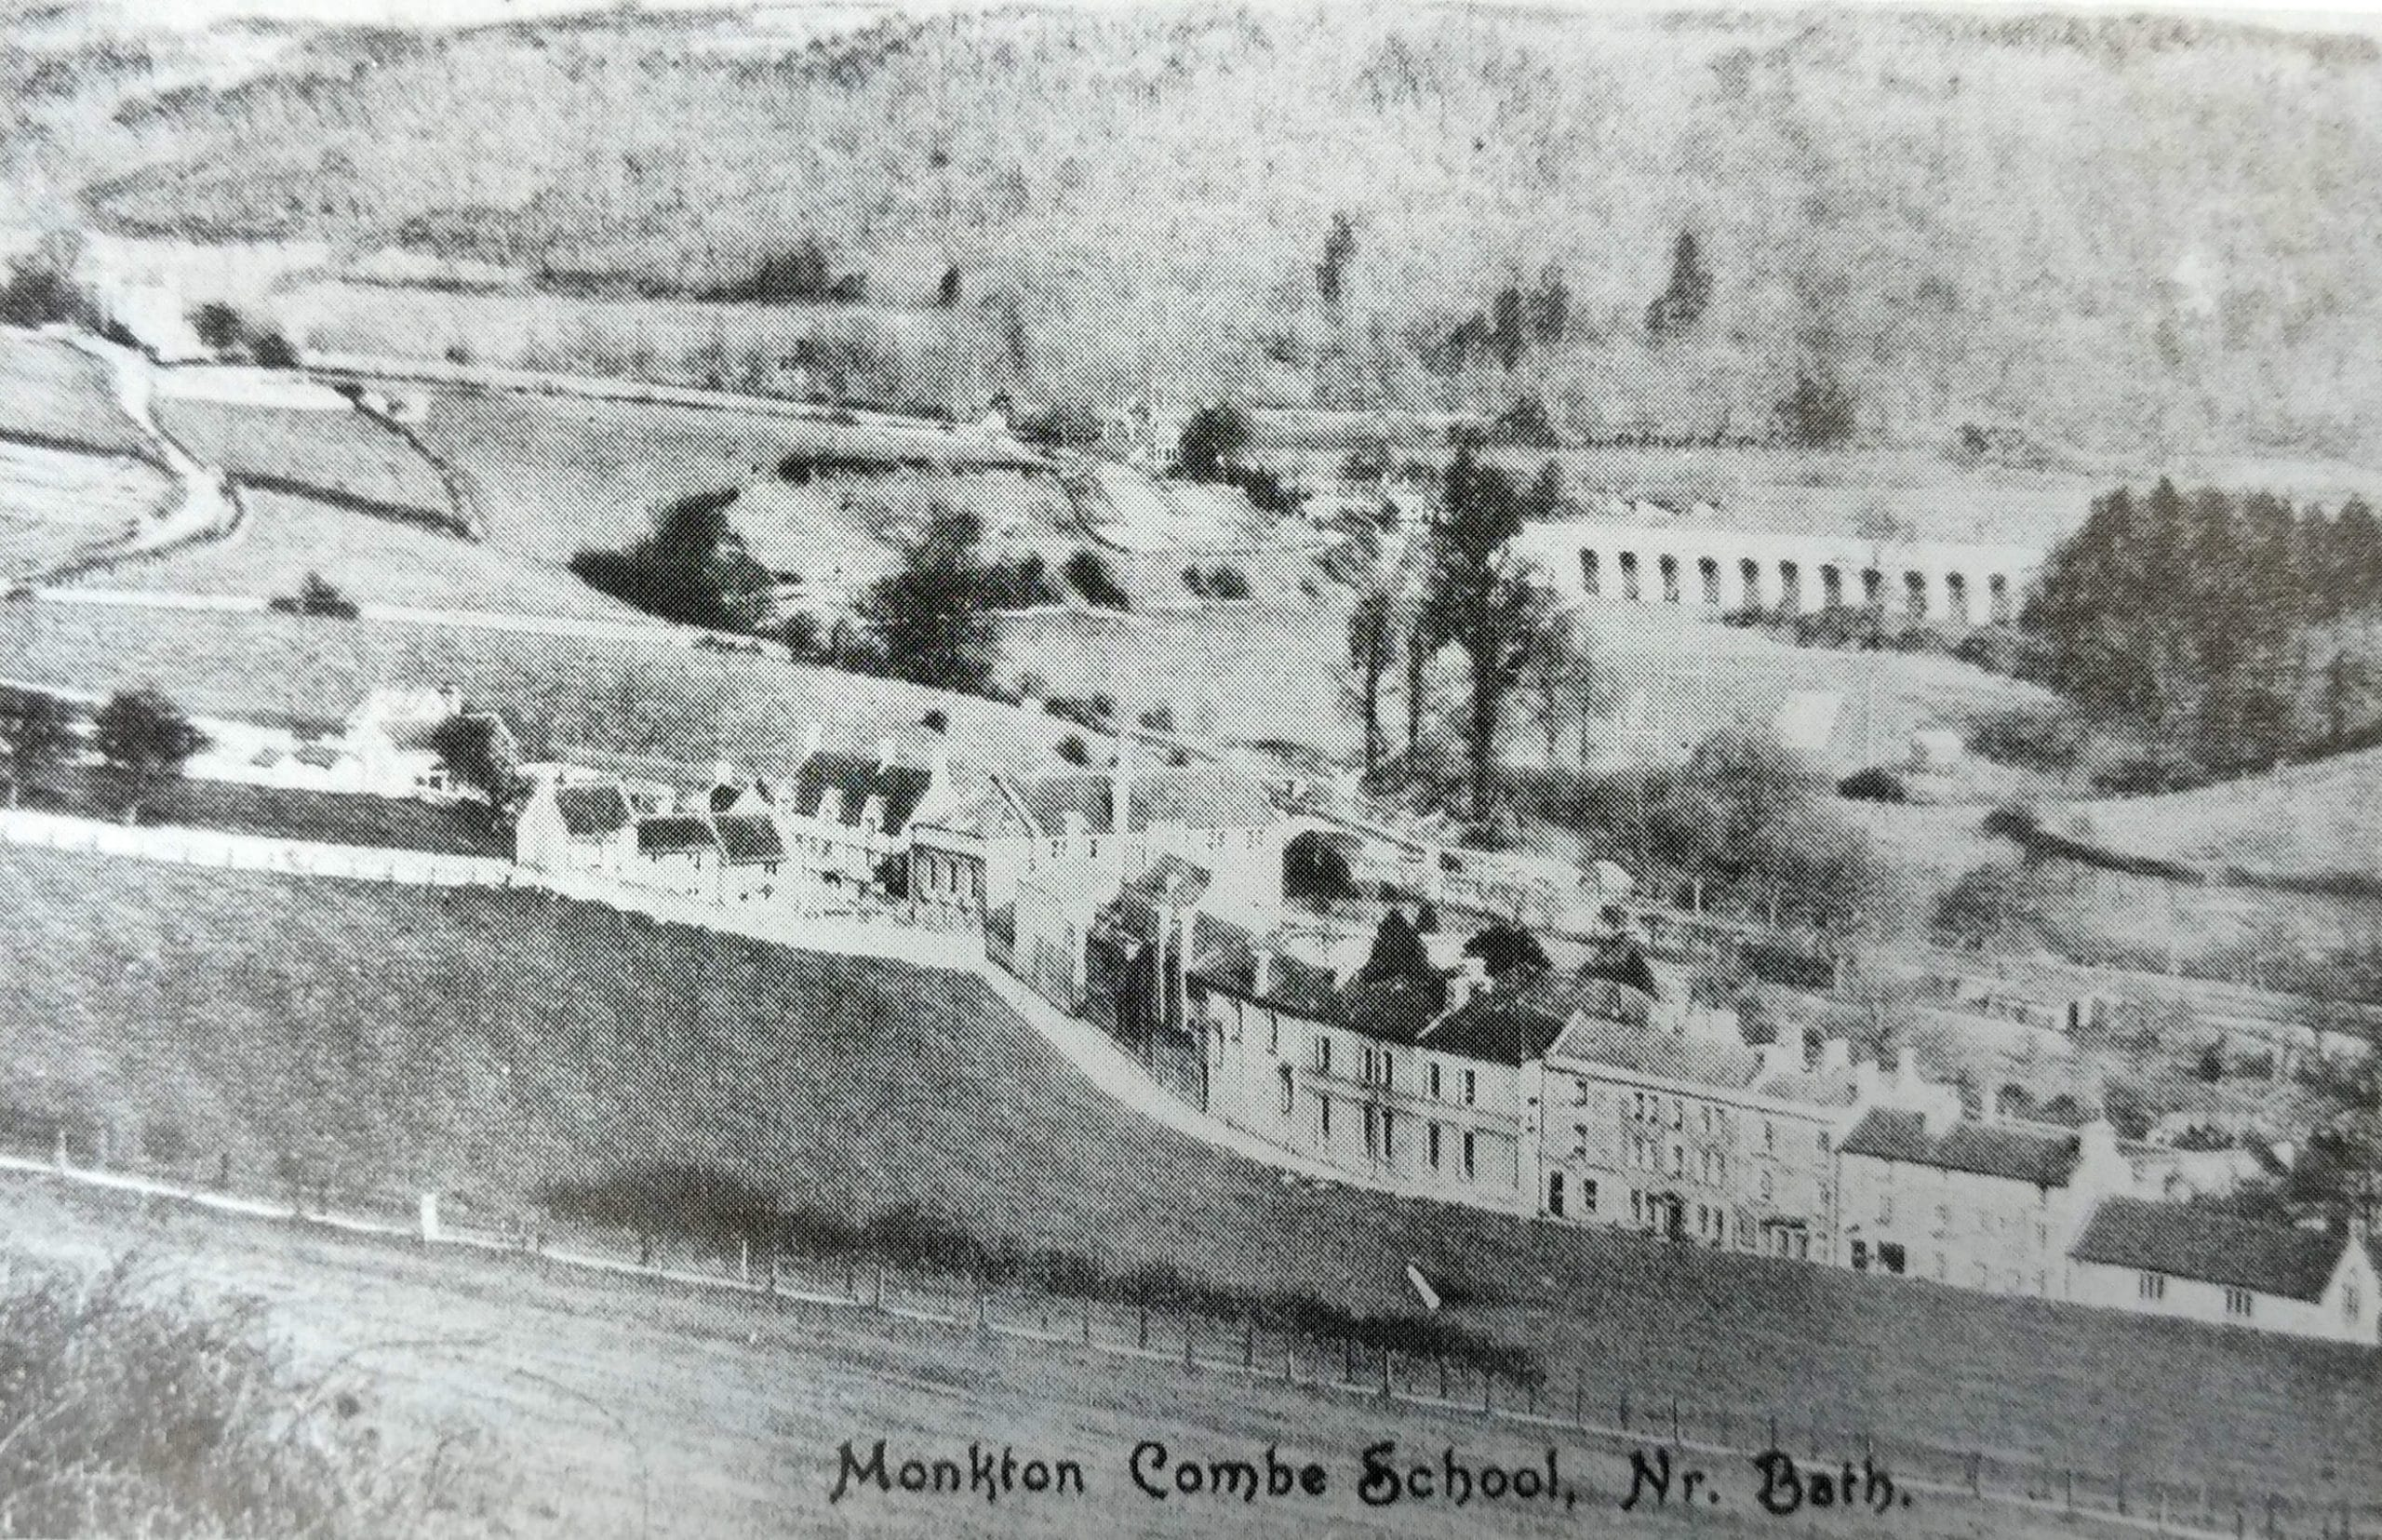 Monkton Combe school about 1904